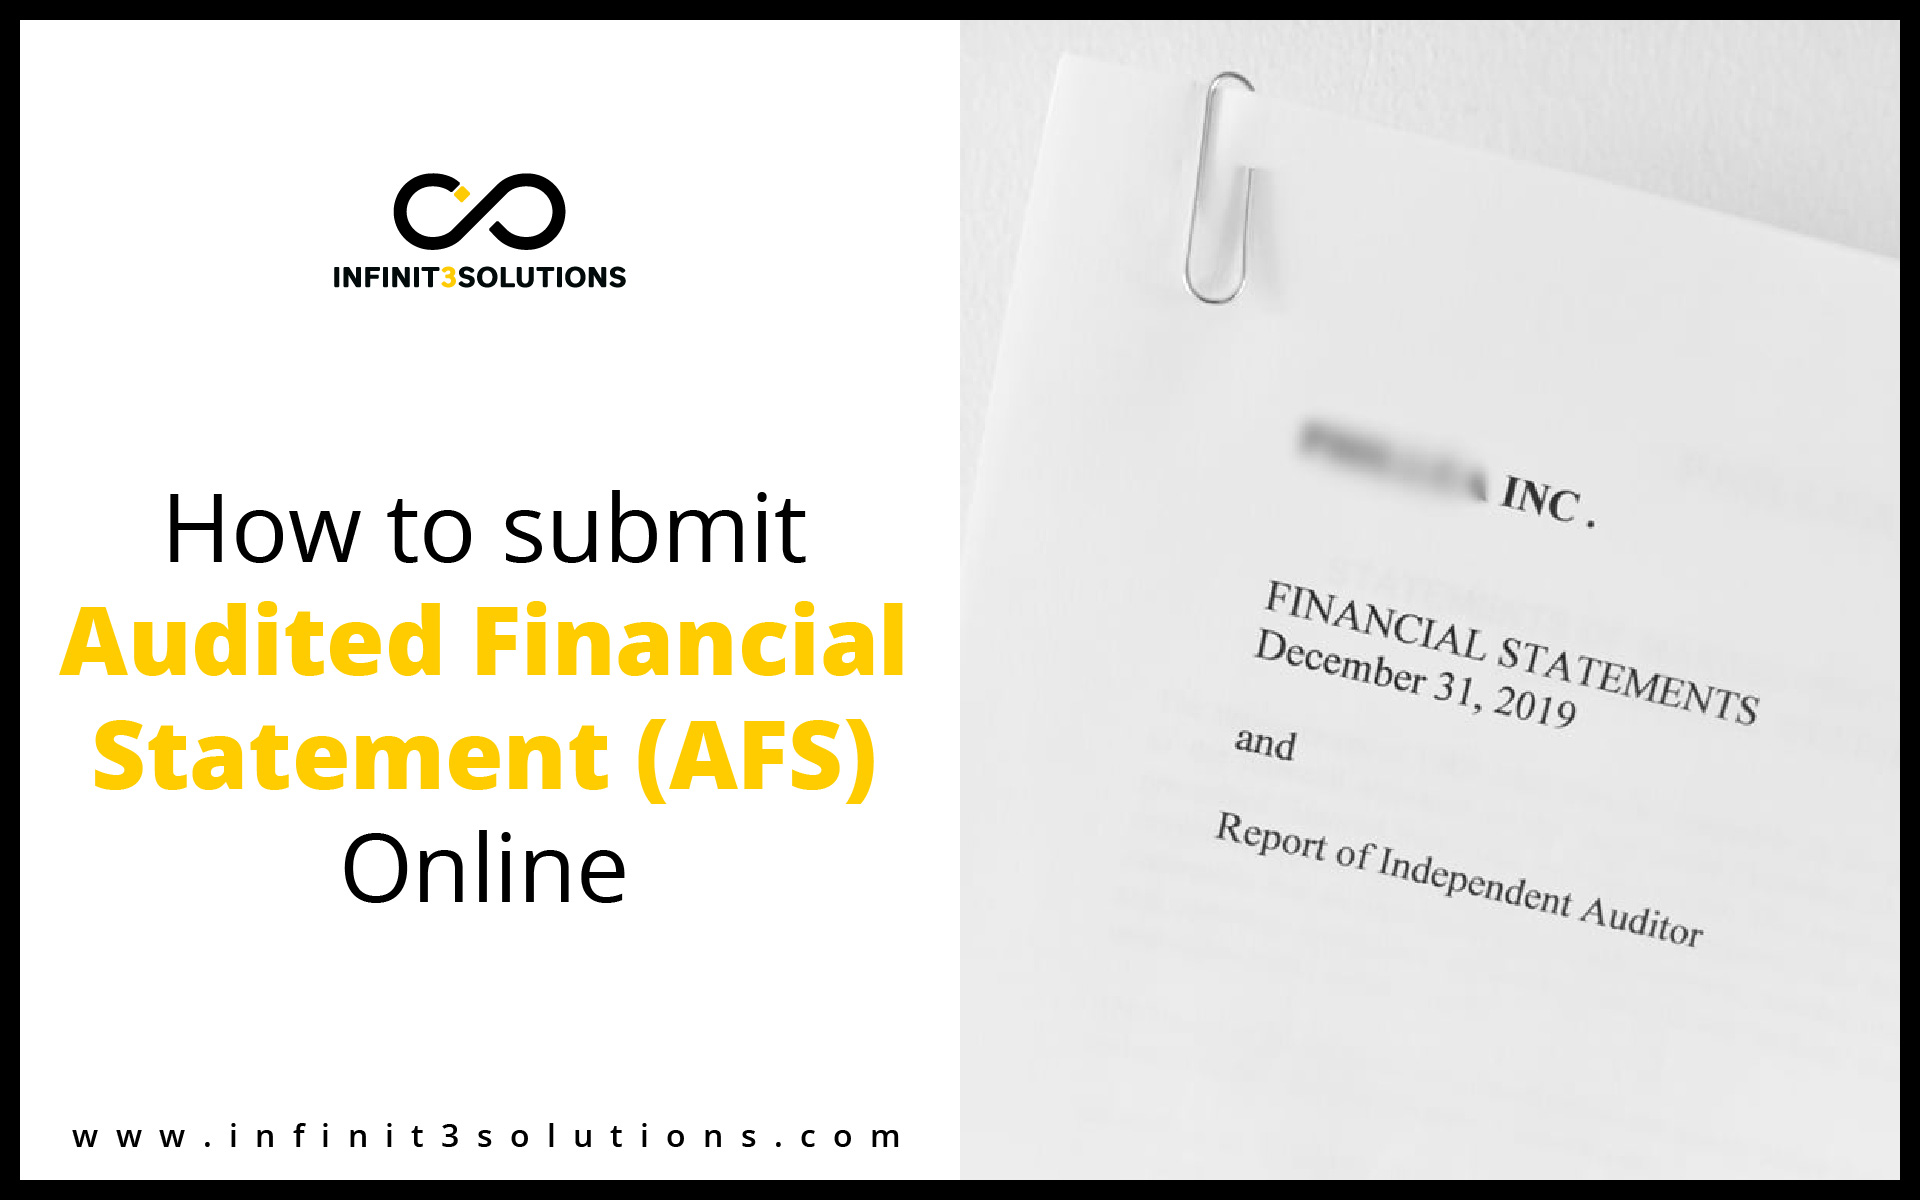 How to submit Audited Financial Statement using eAFS